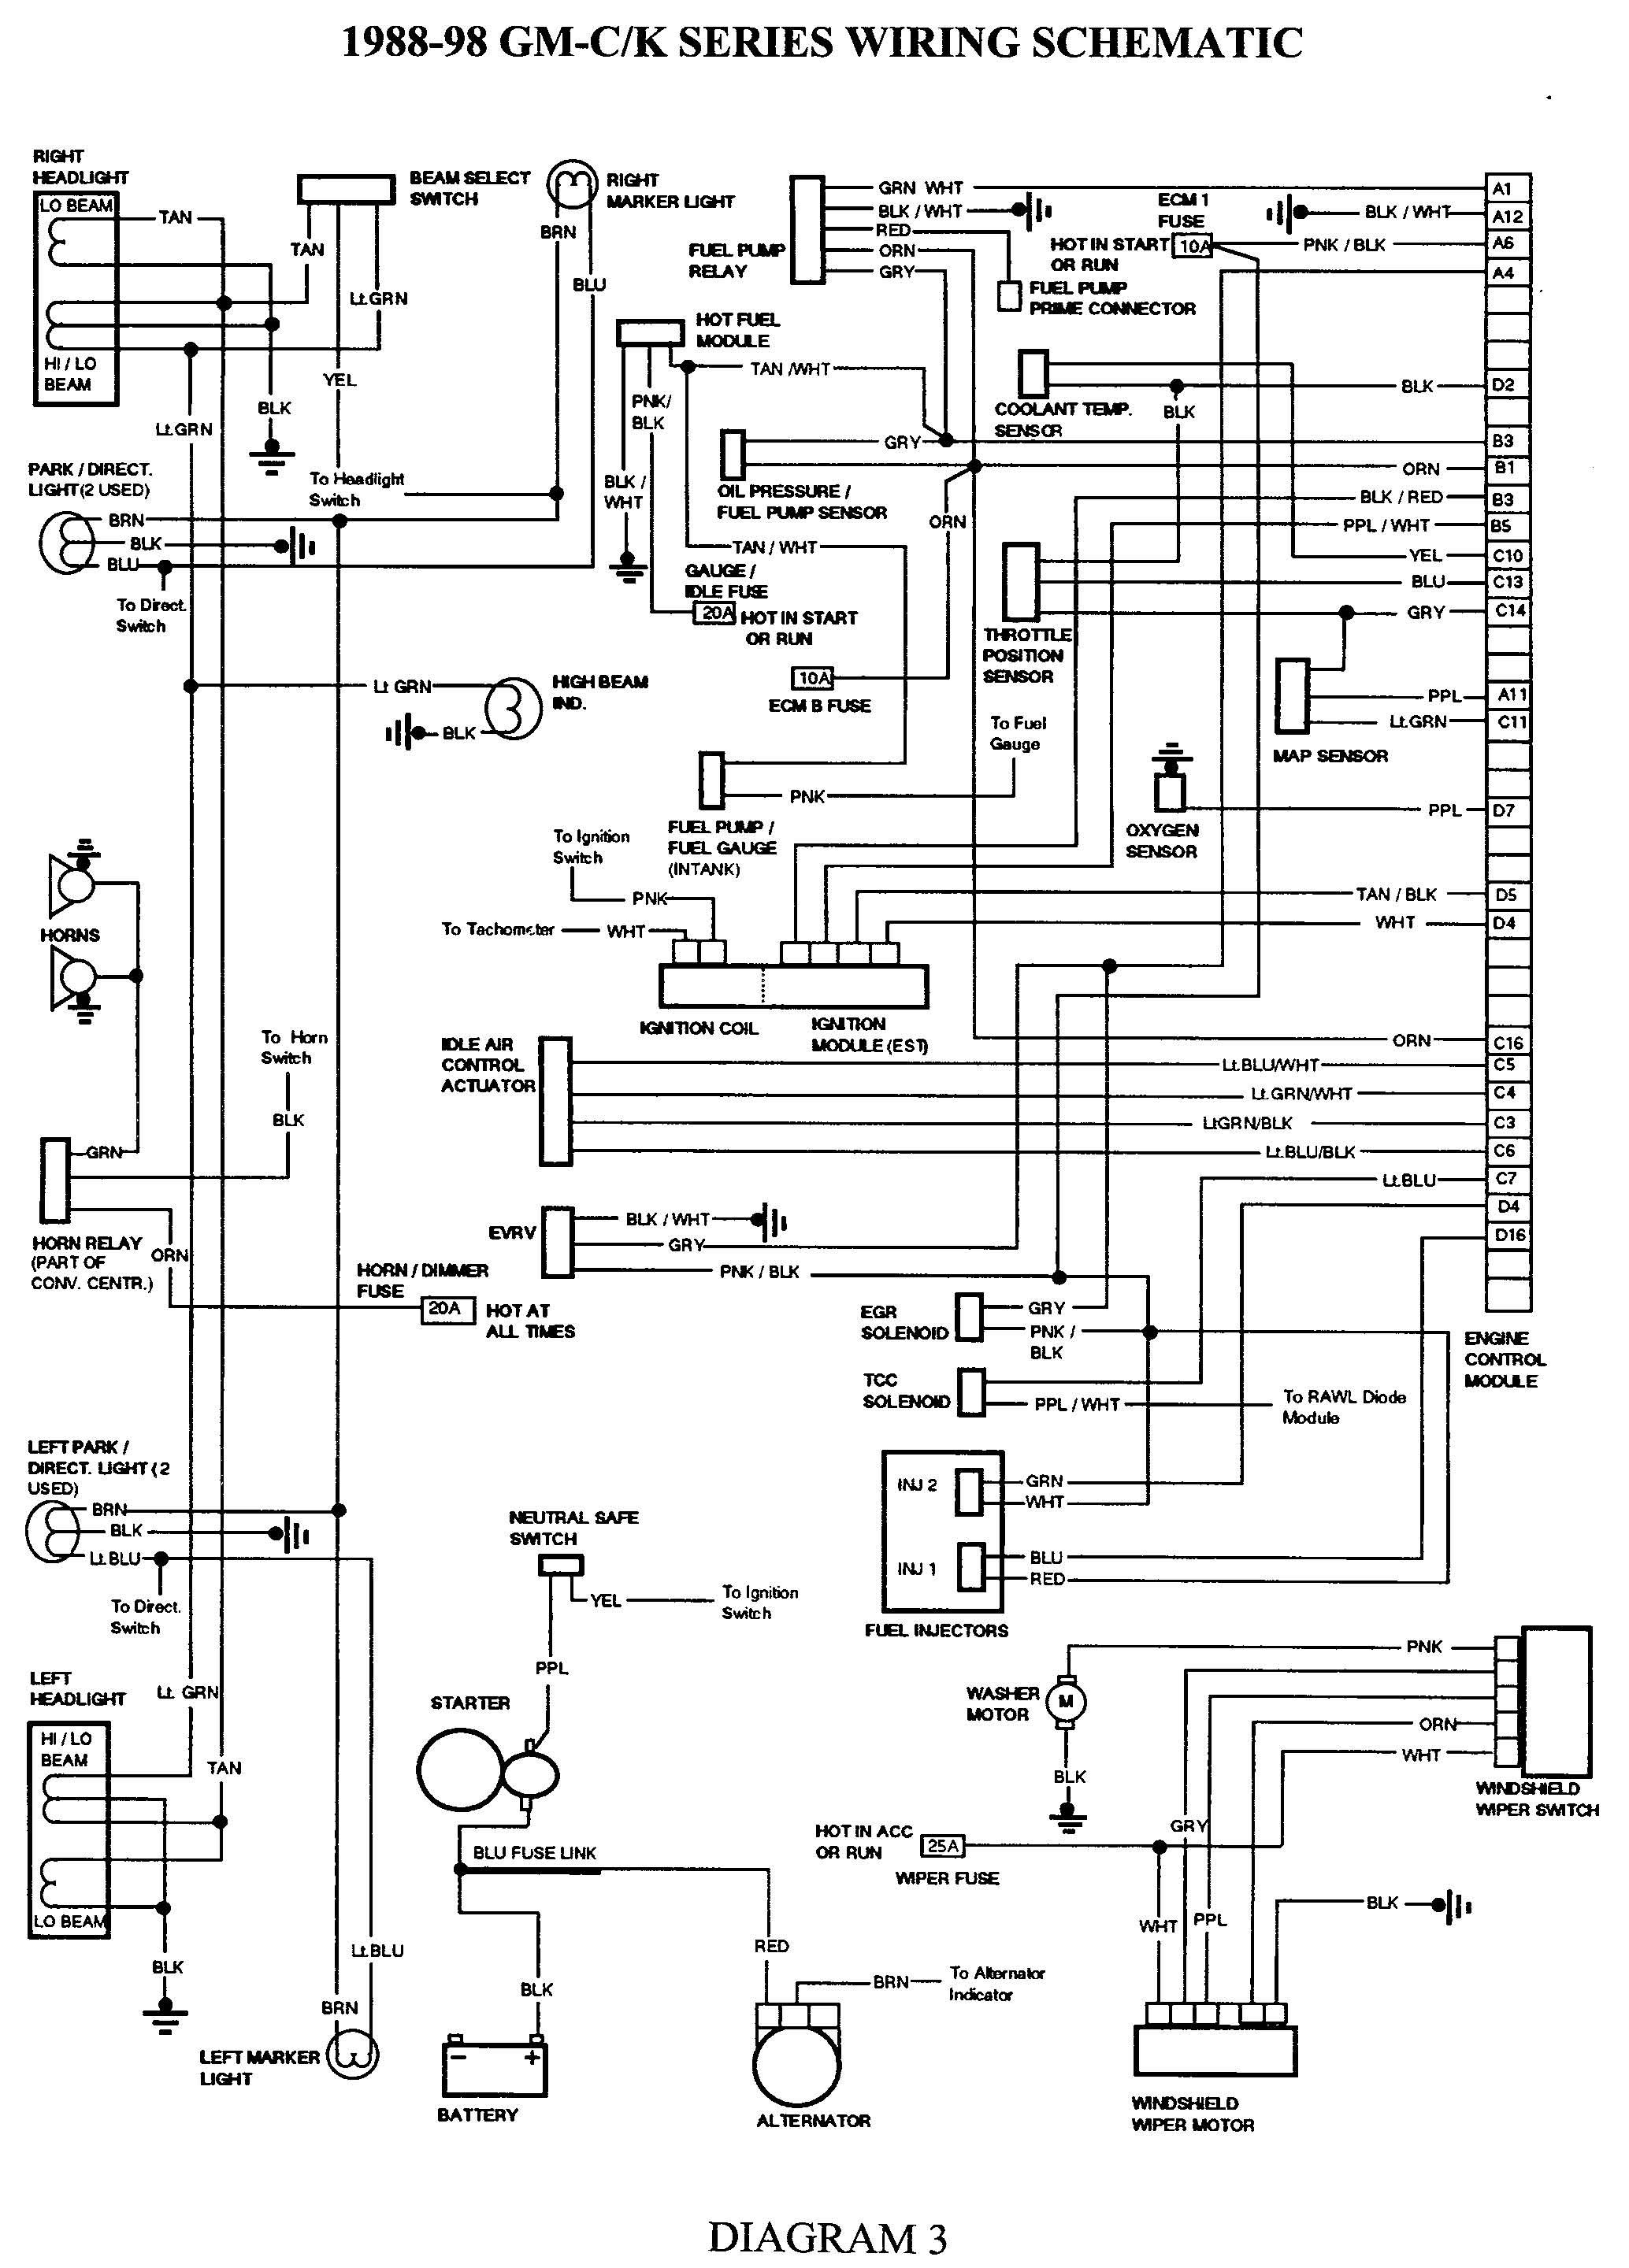 gmc truck wiring diagrams on gm wiring harness diagram 88 98 kc rh pinterest com wiring harness schematic for model cdx-fw570 wiring harness schematic for 2005 silverado